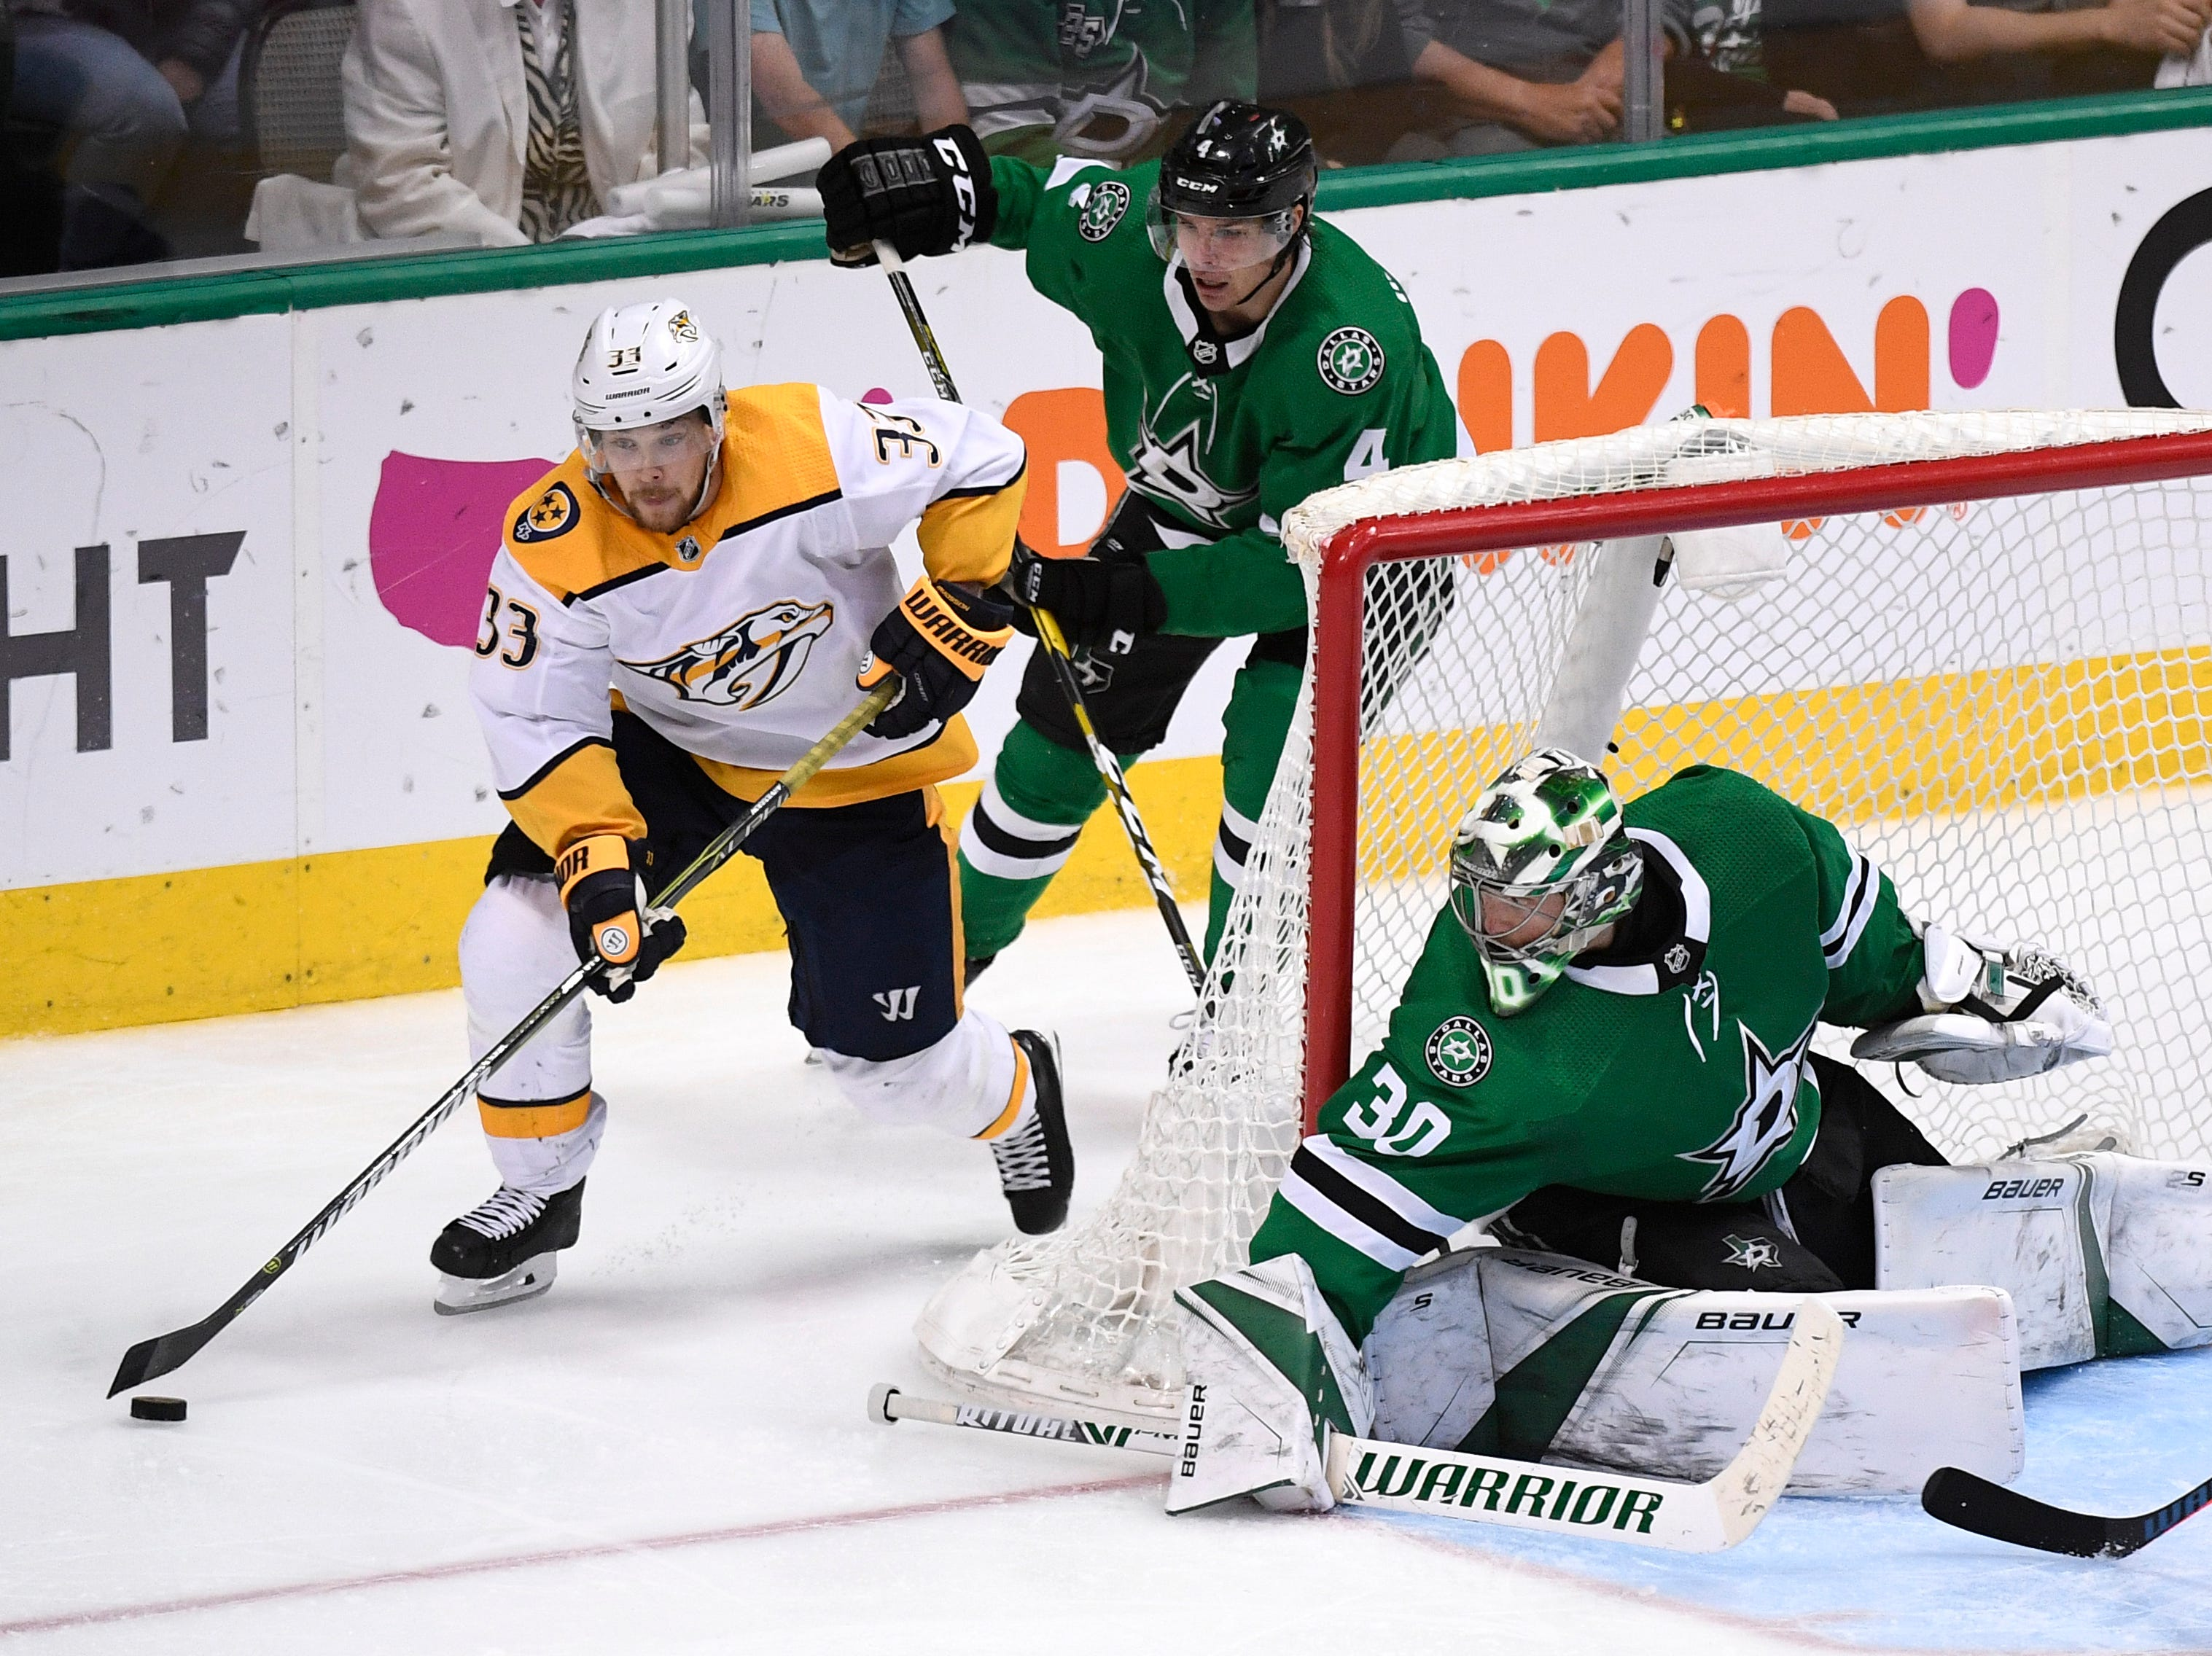 Nashville Predators right wing Viktor Arvidsson (33) moves the puck behind Dallas Stars goaltender Ben Bishop (30) defended by Stars defenseman Miro Heiskanen (4) during overtime of the divisional semifinal game at the American Airlines Center in Dallas, Texas, Monday, April 22, 2019.